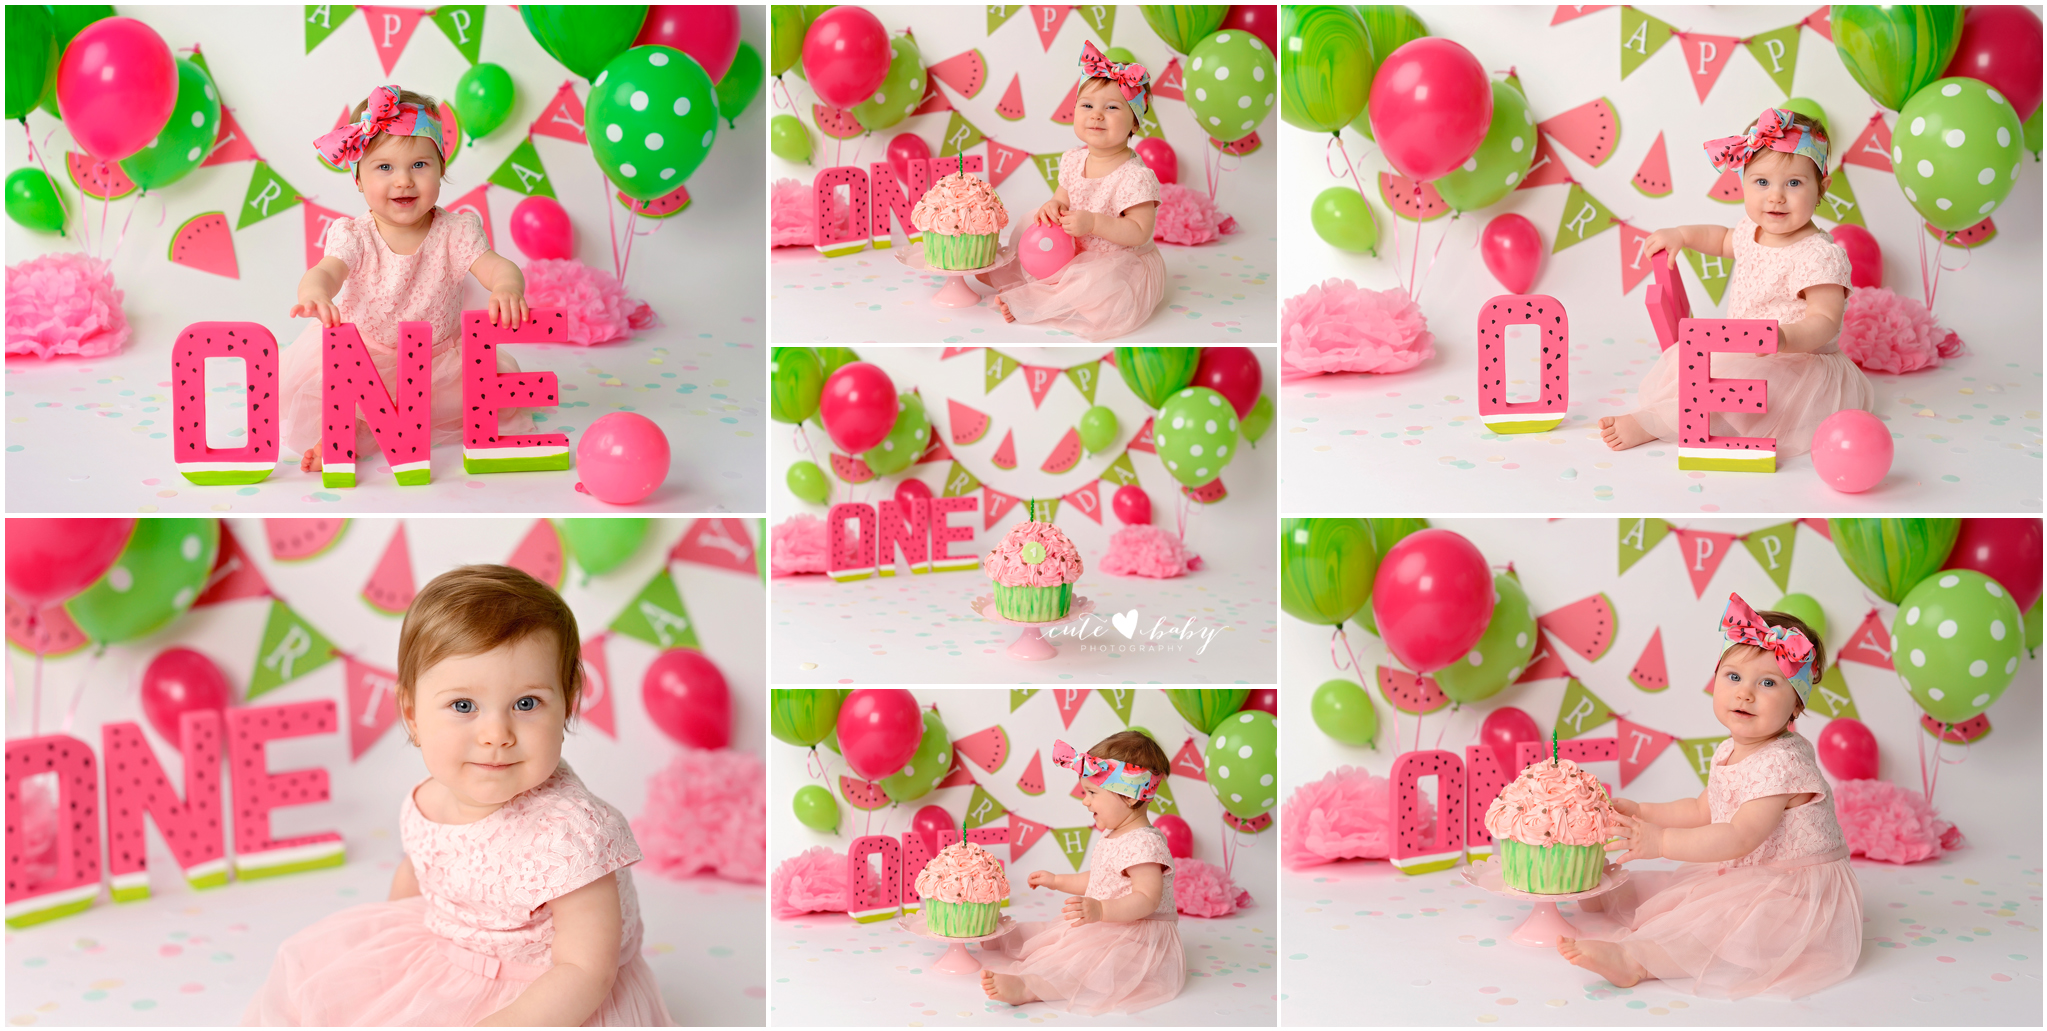 cutebabyphotography, manchester newborn photography, newborn photography, atgancarz photography, cake smash photography